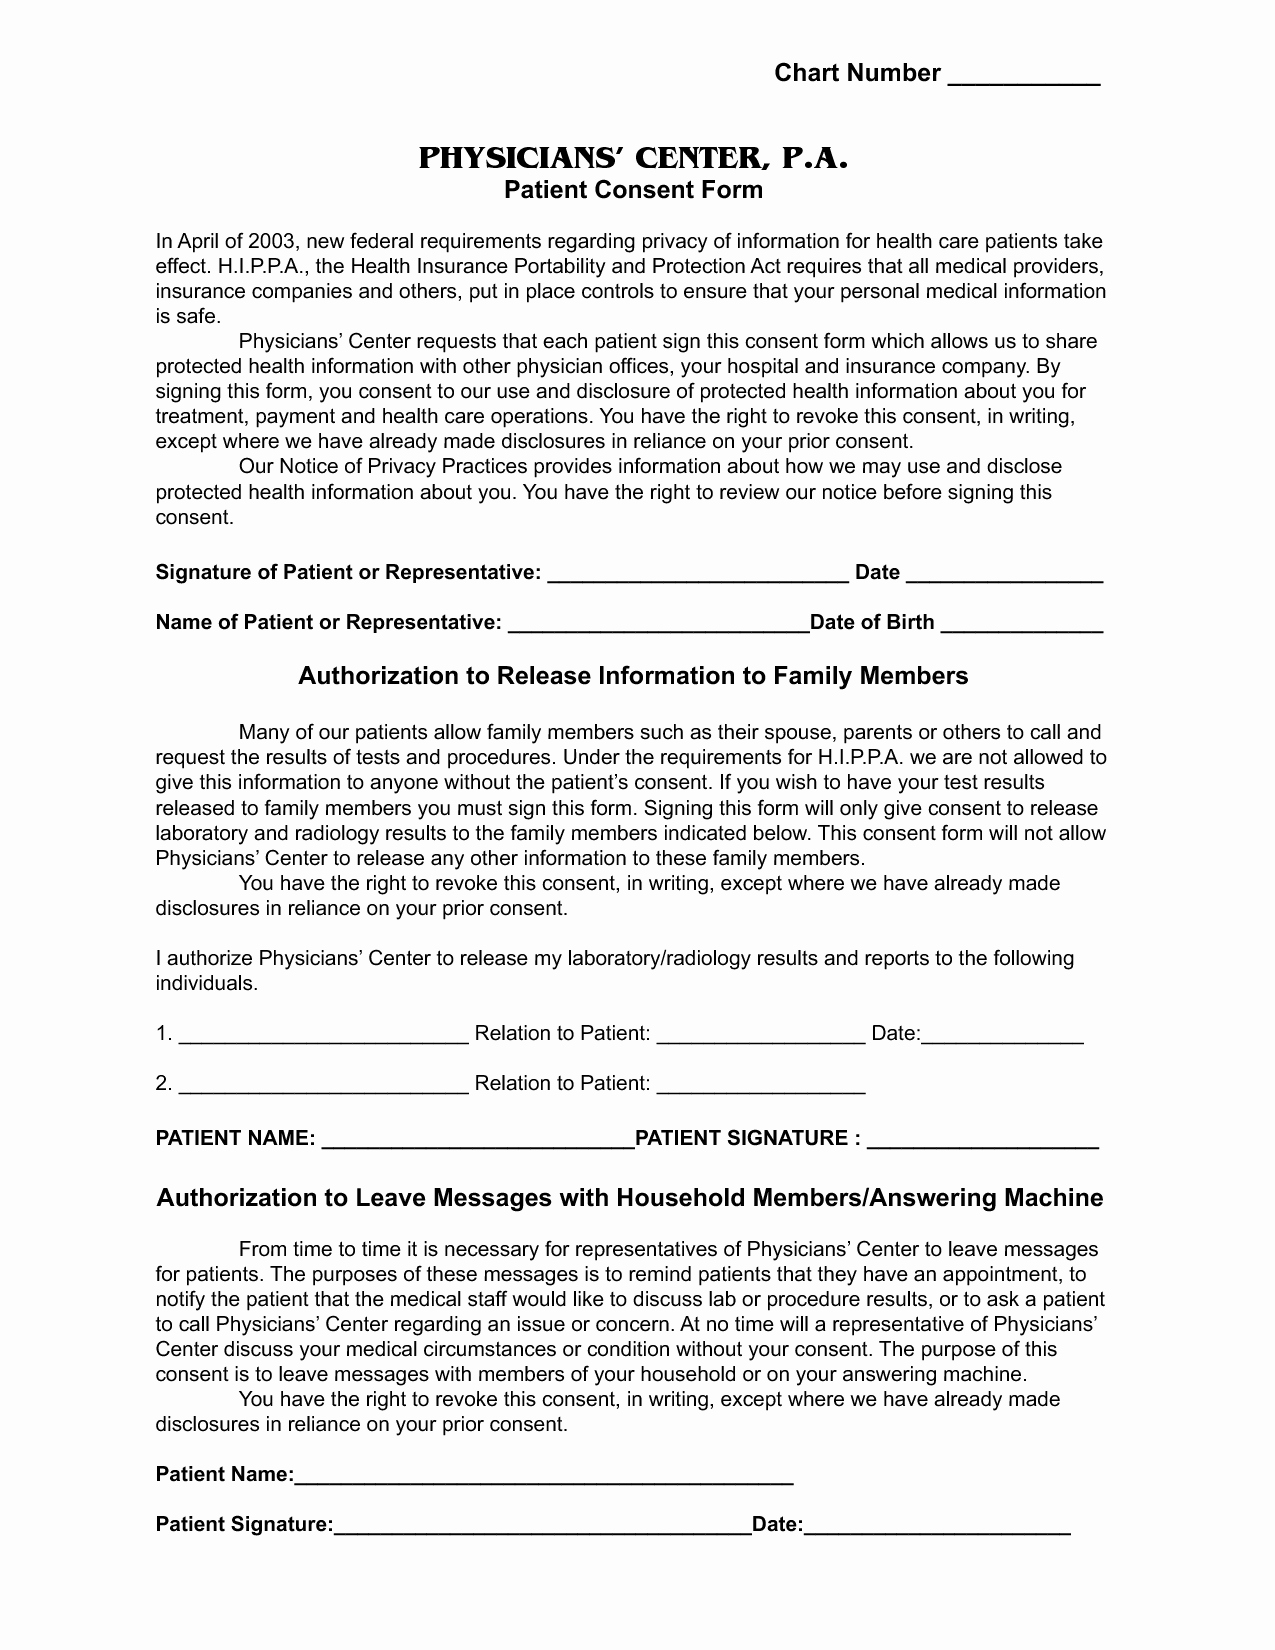 Medical Informed Consent form